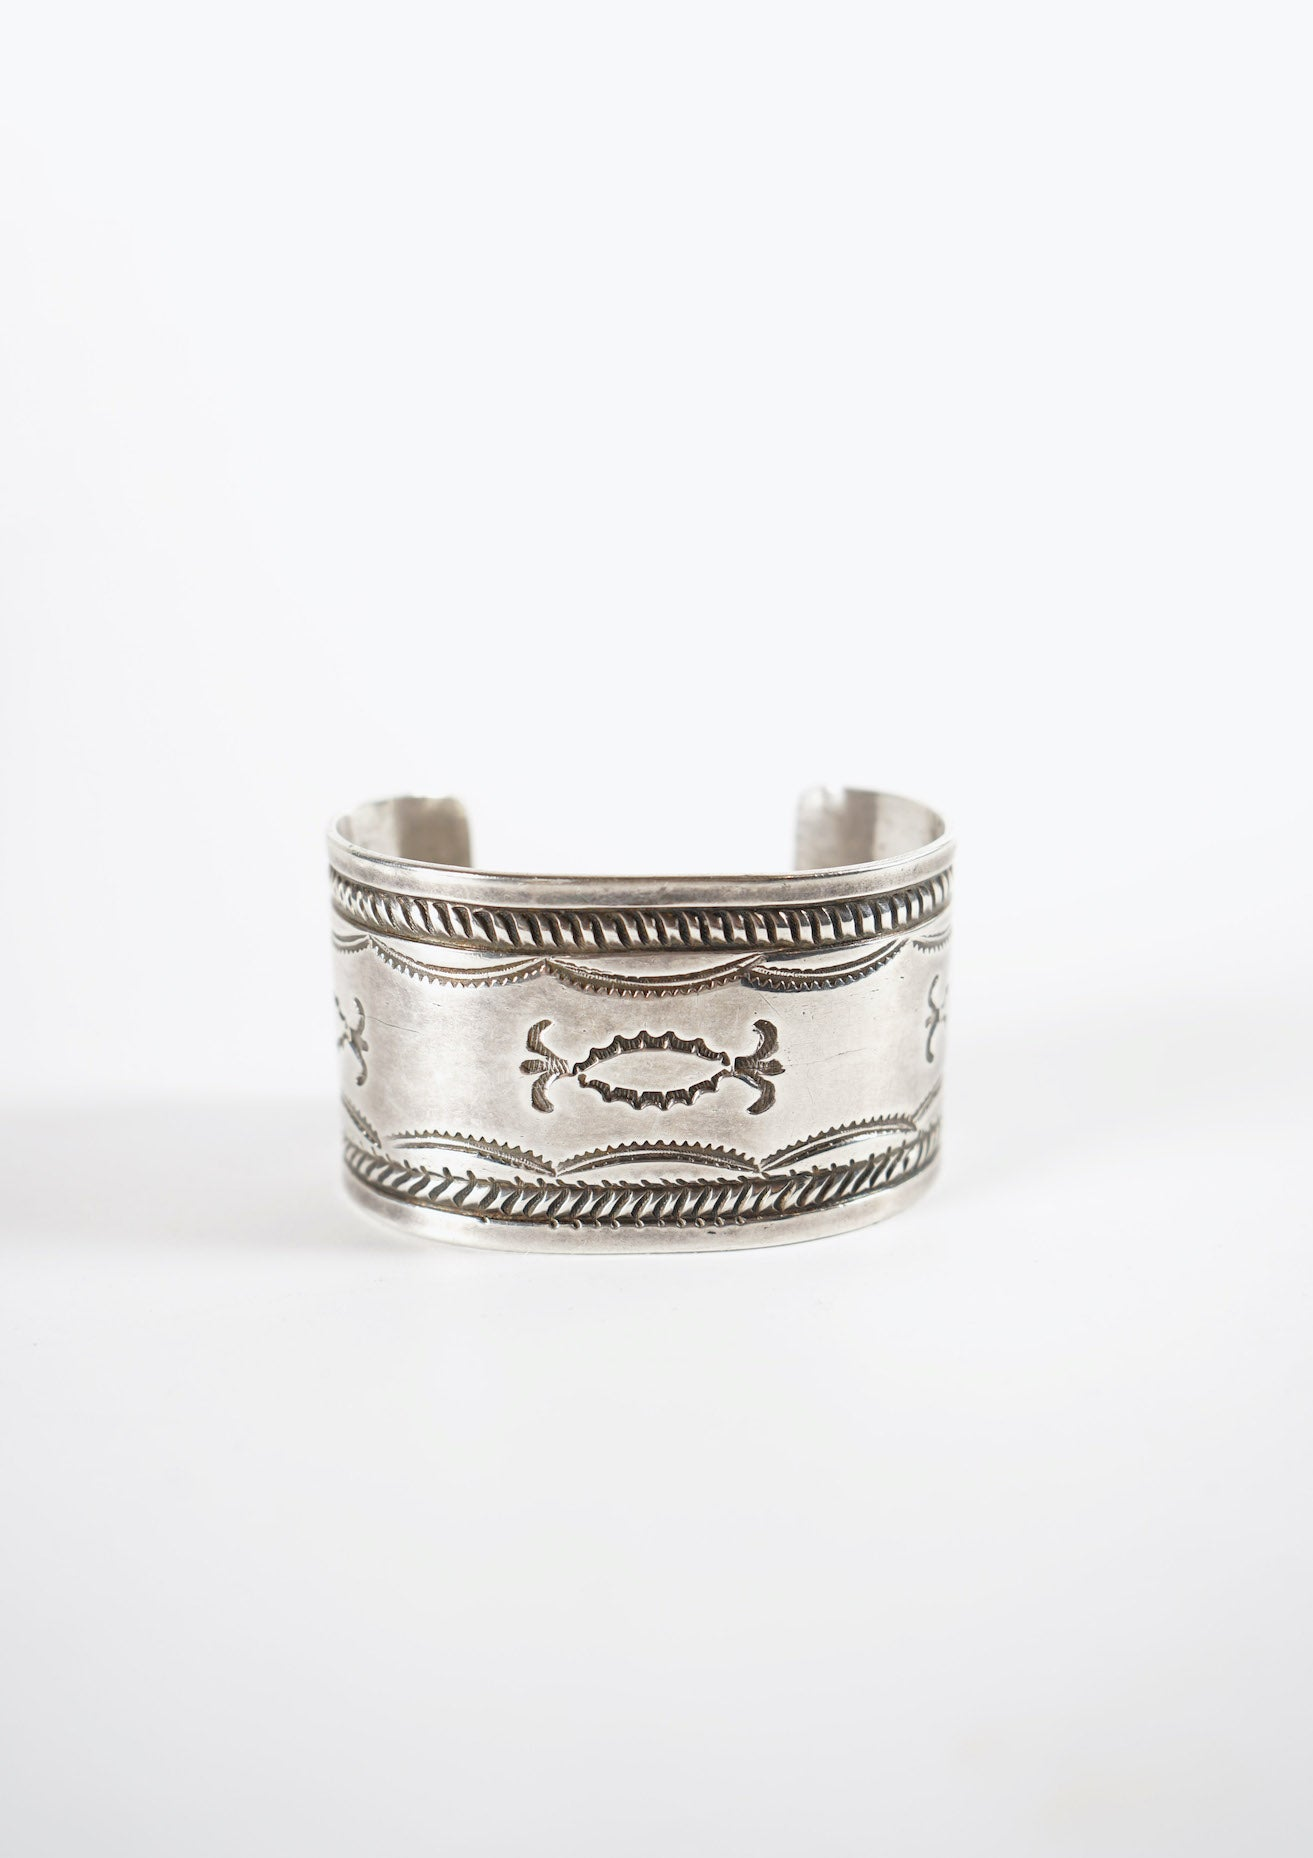 <strong>VINTAGE</strong></br>Navajo Stumped Silver Wide Cuff